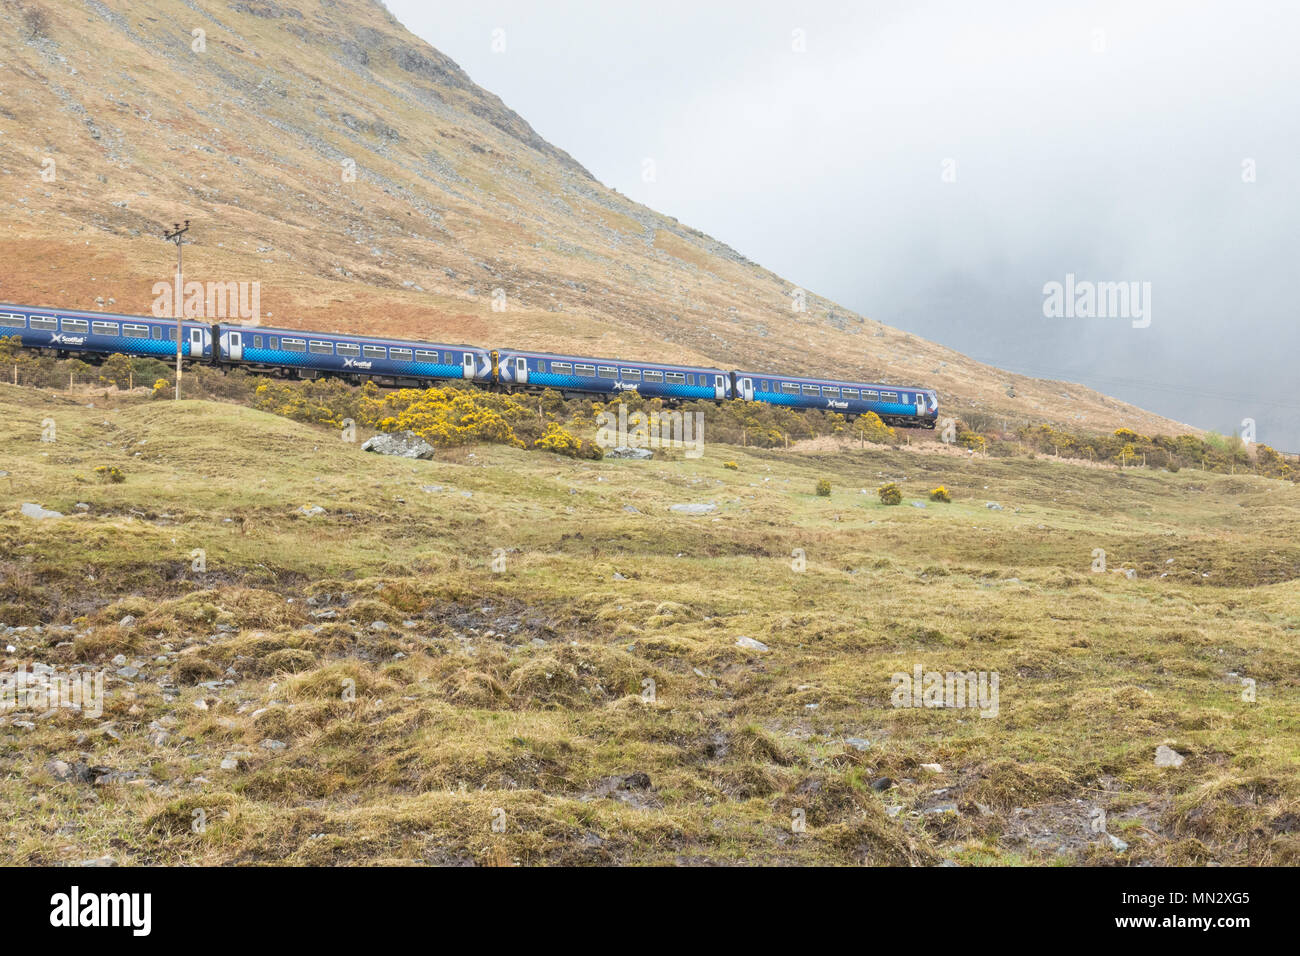 ScotRail train near Bridge of Orchy in the Scottish Highlands, UK - Stock Image